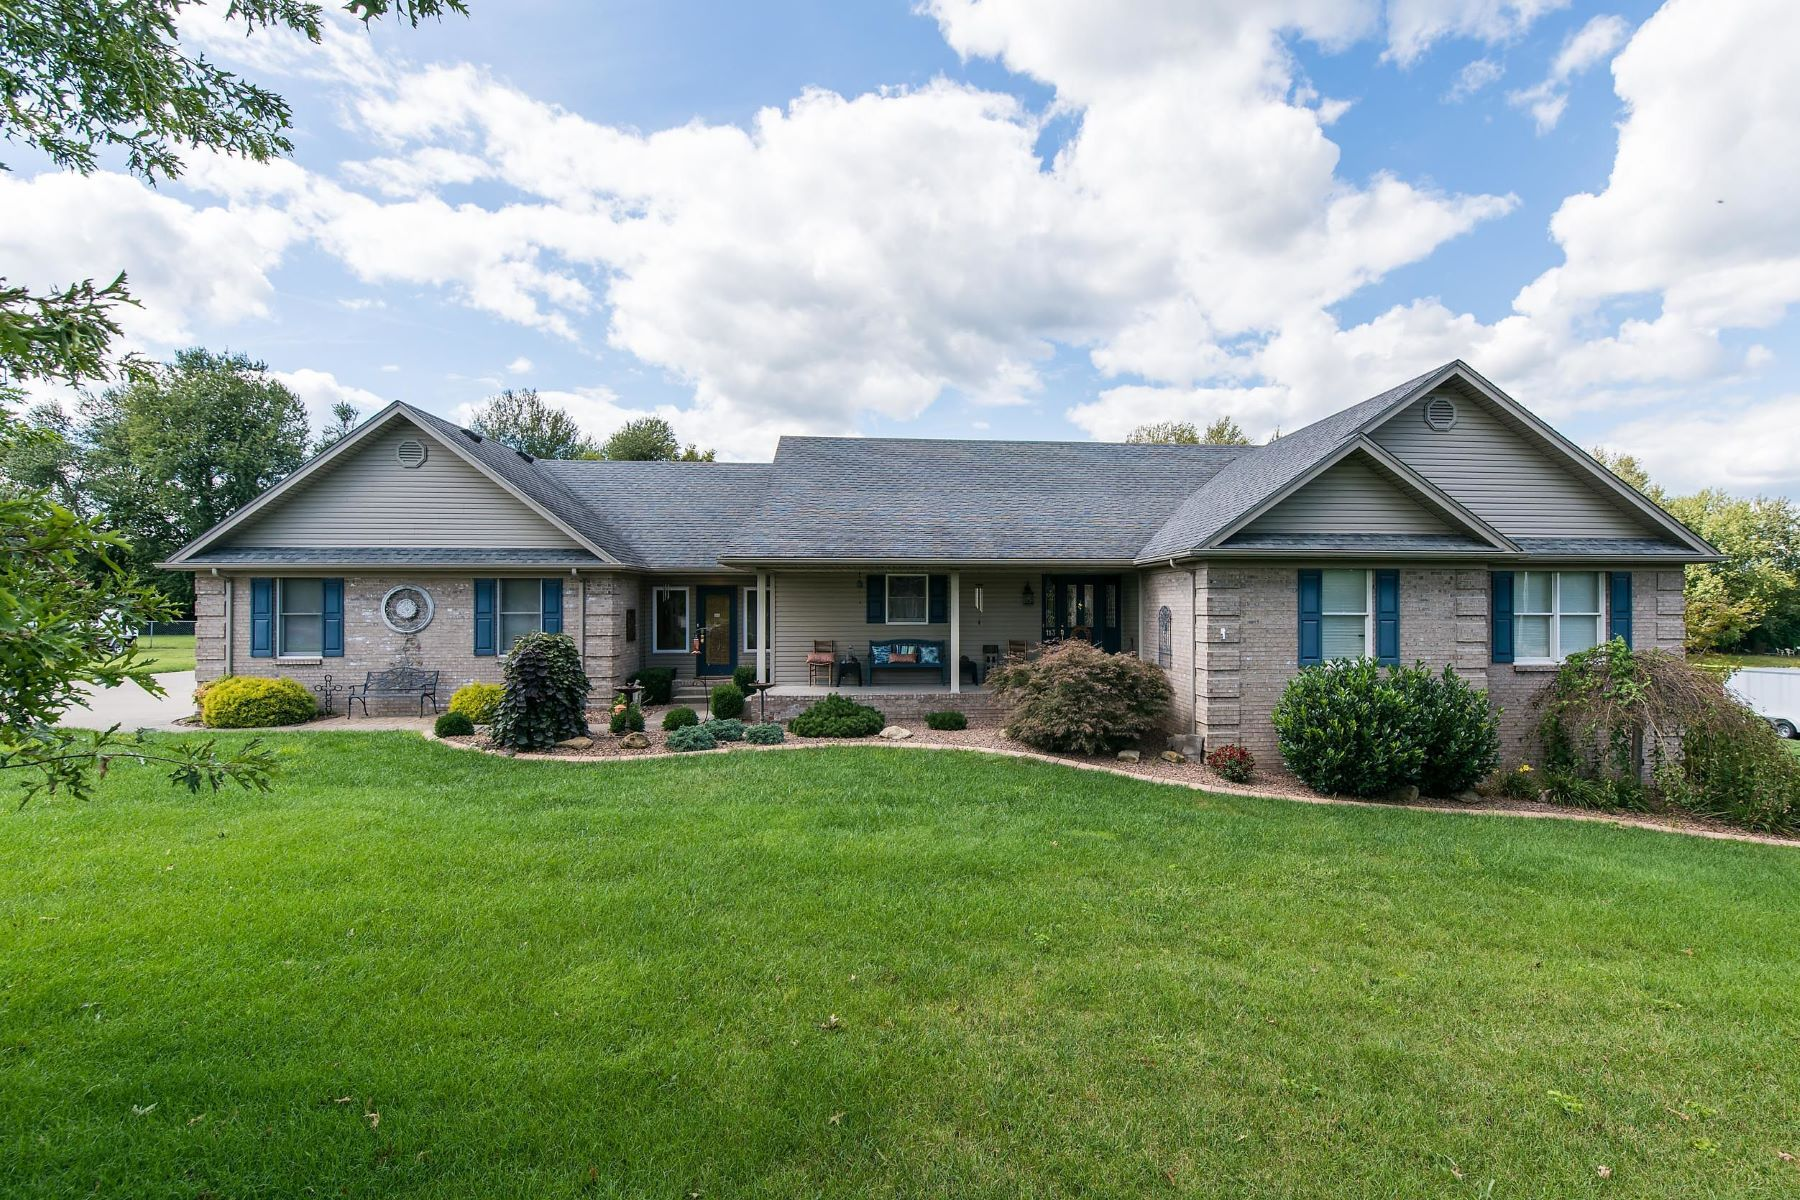 Single Family Home for Sale at 113 Greystone Court Nicholasville, Kentucky 40356 United States